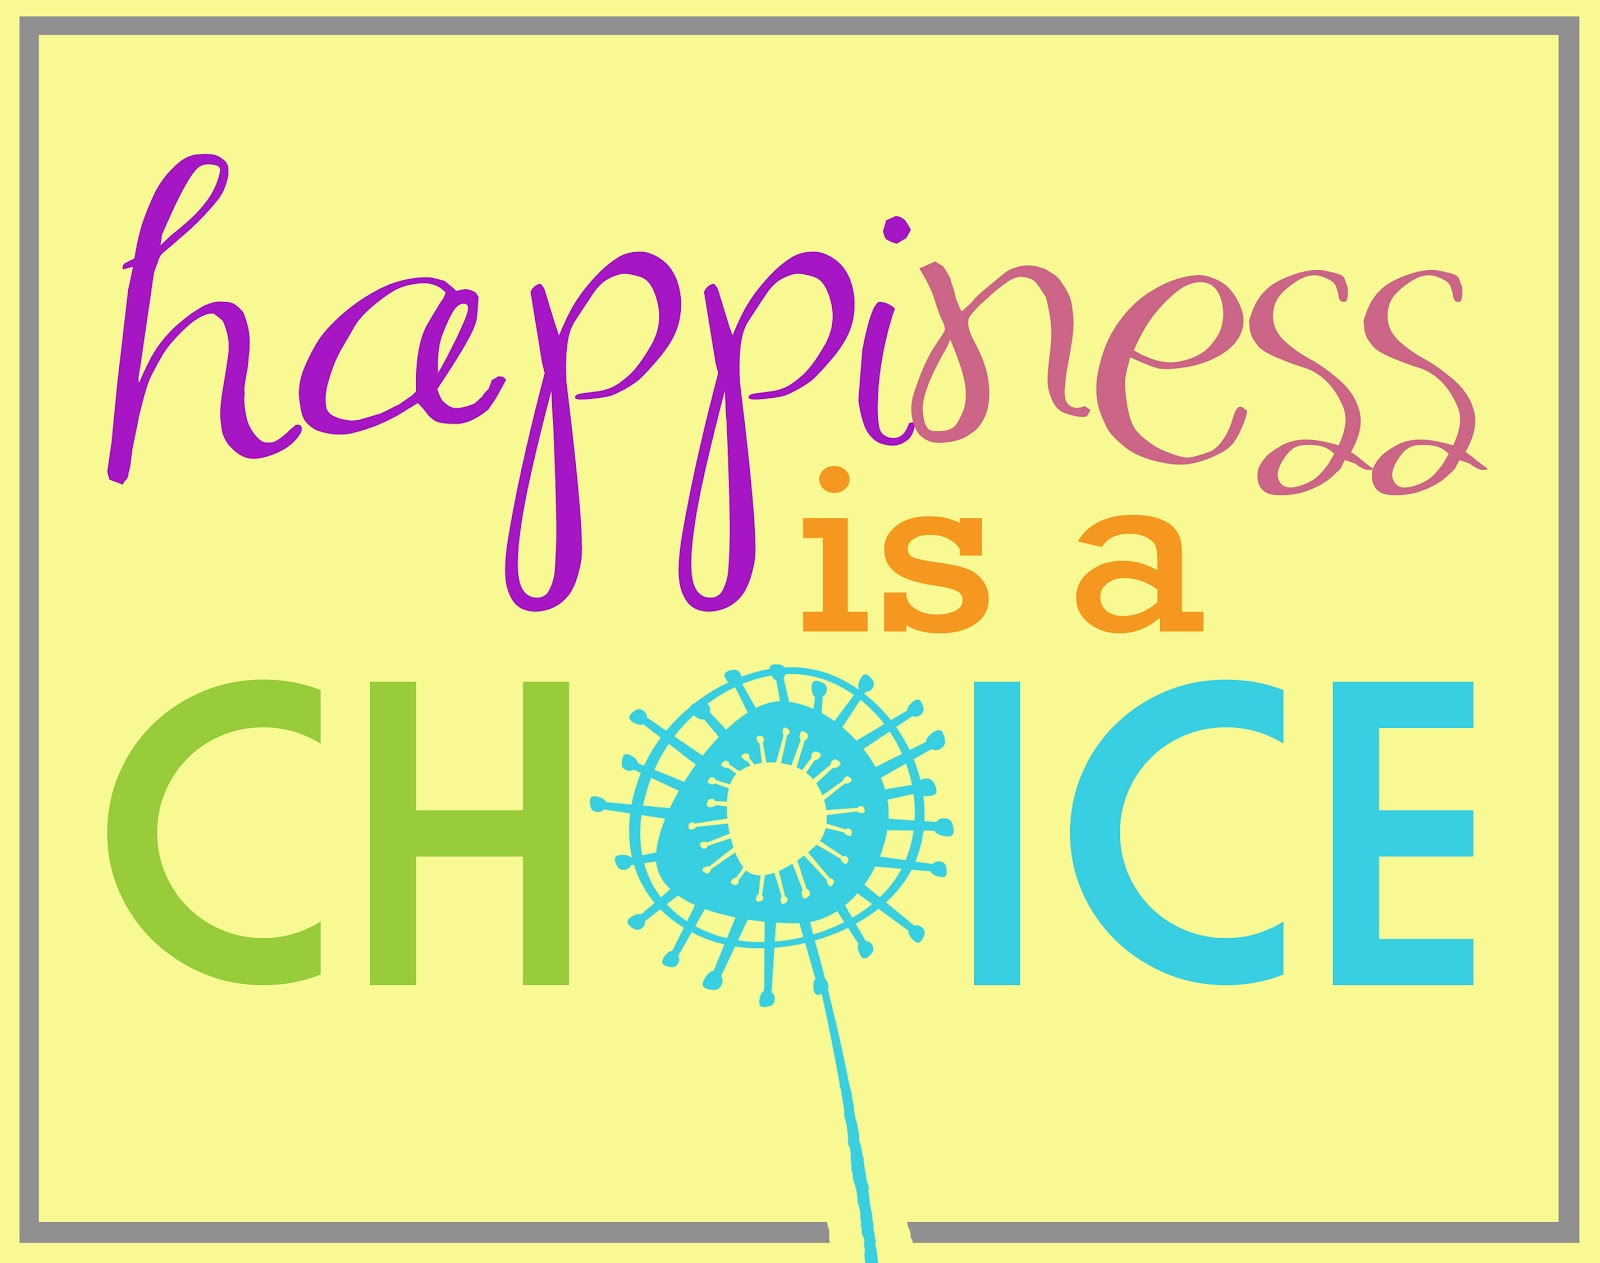 Communication on this topic: Happiness Is A Choice, happiness-is-a-choice/